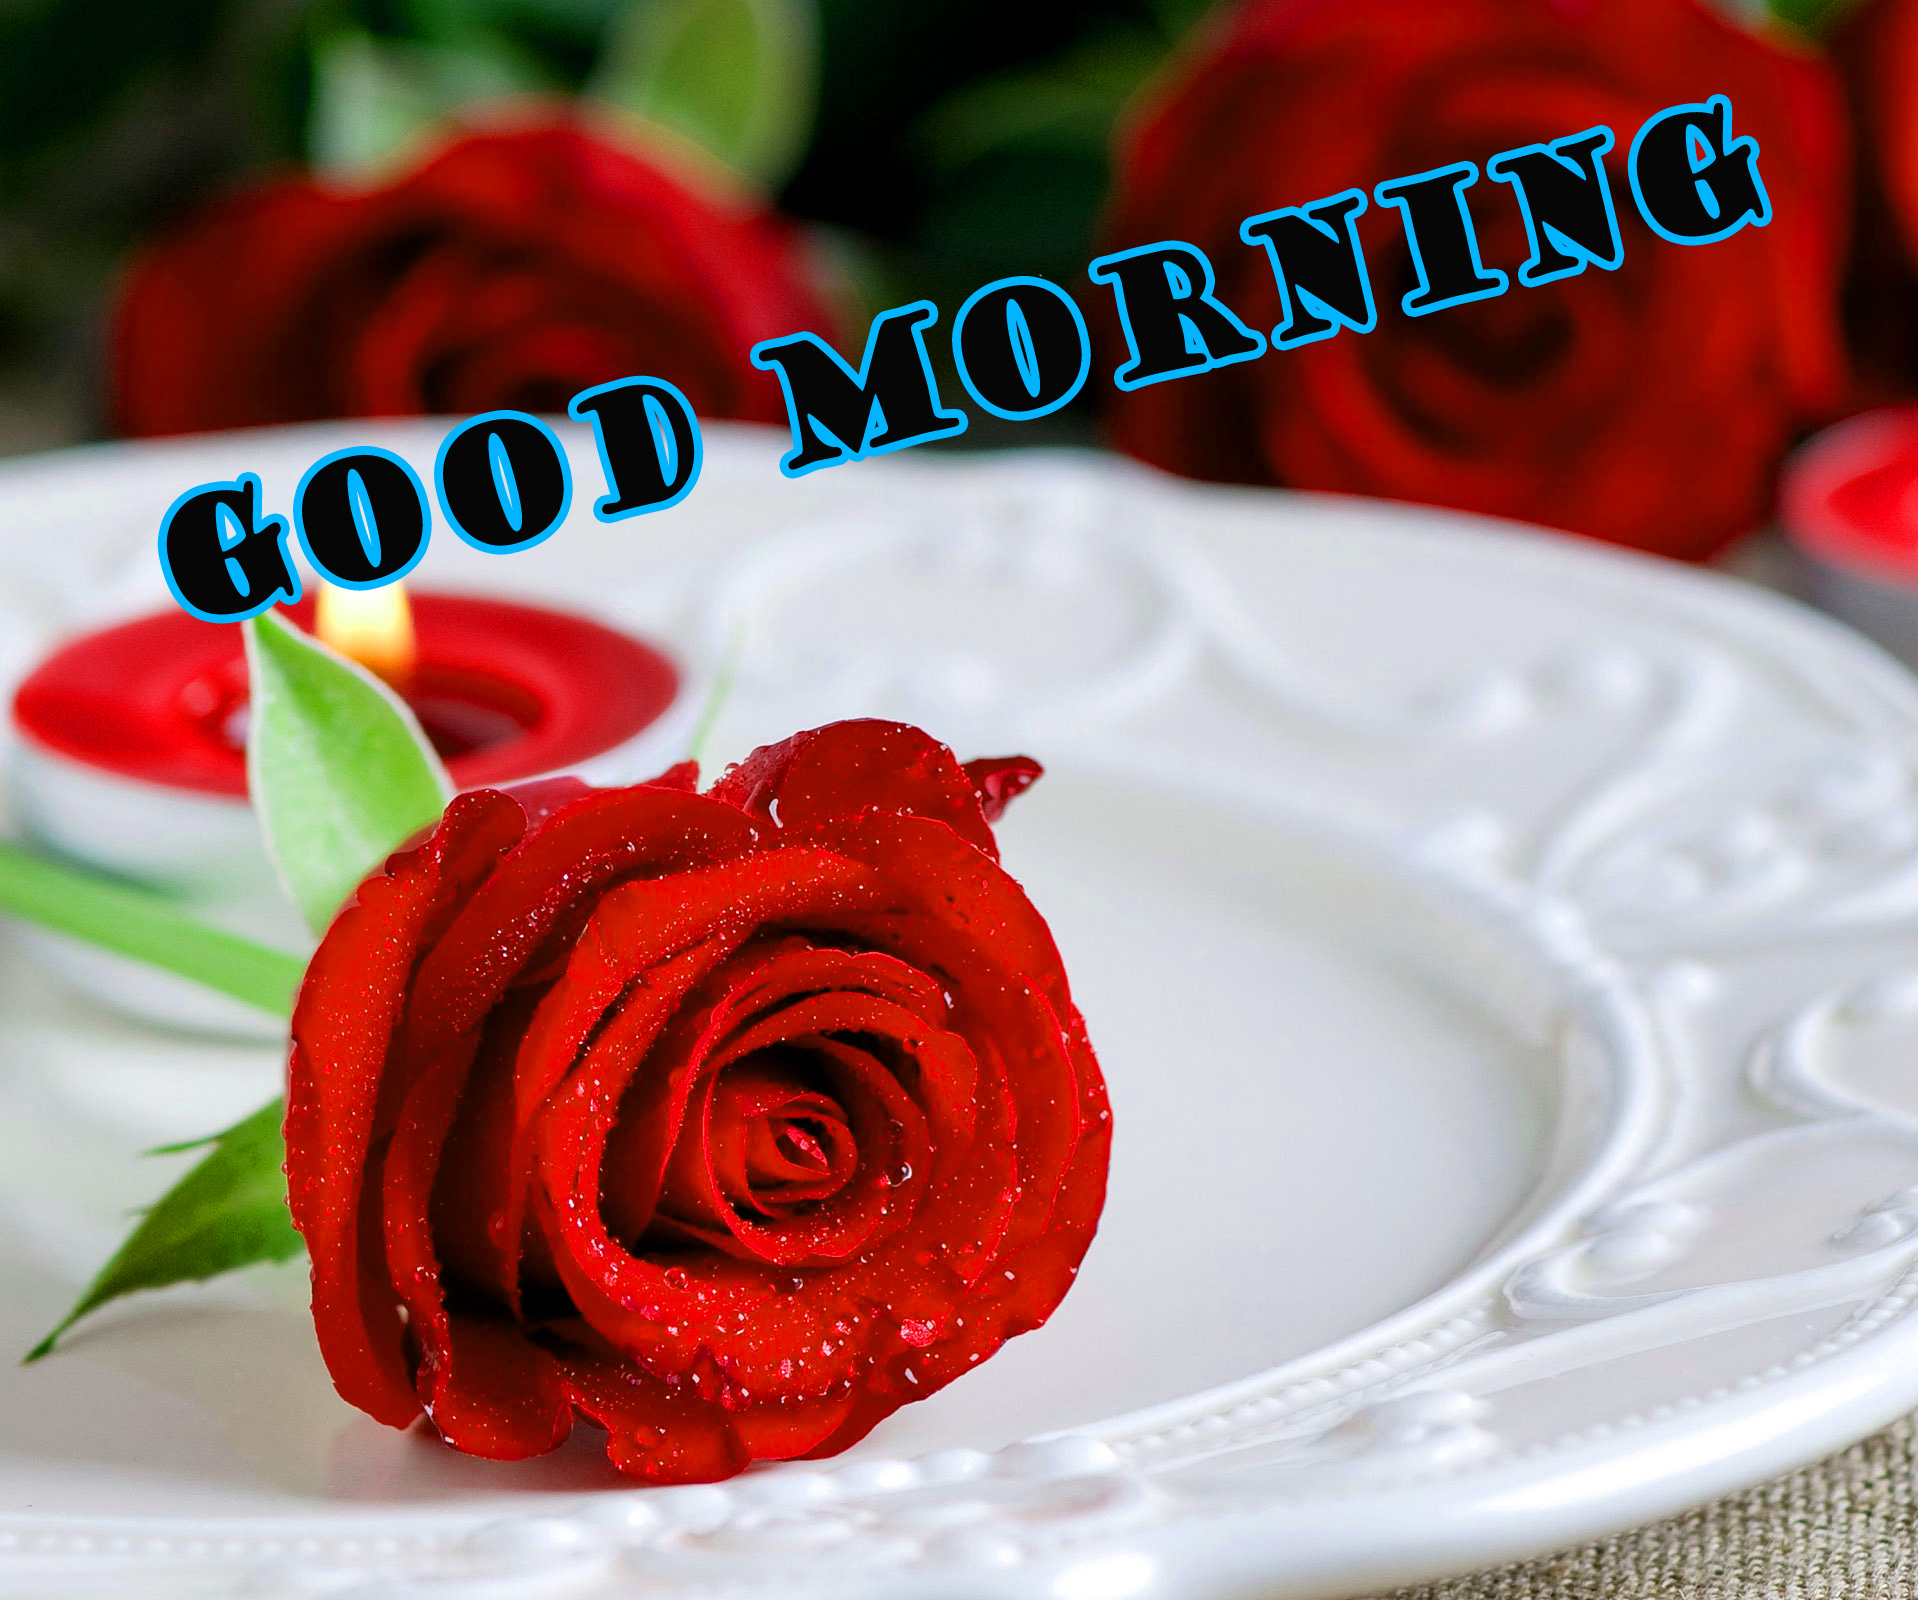 Good Morning Red Rose Wallpaper Photo HD For Whatsapp